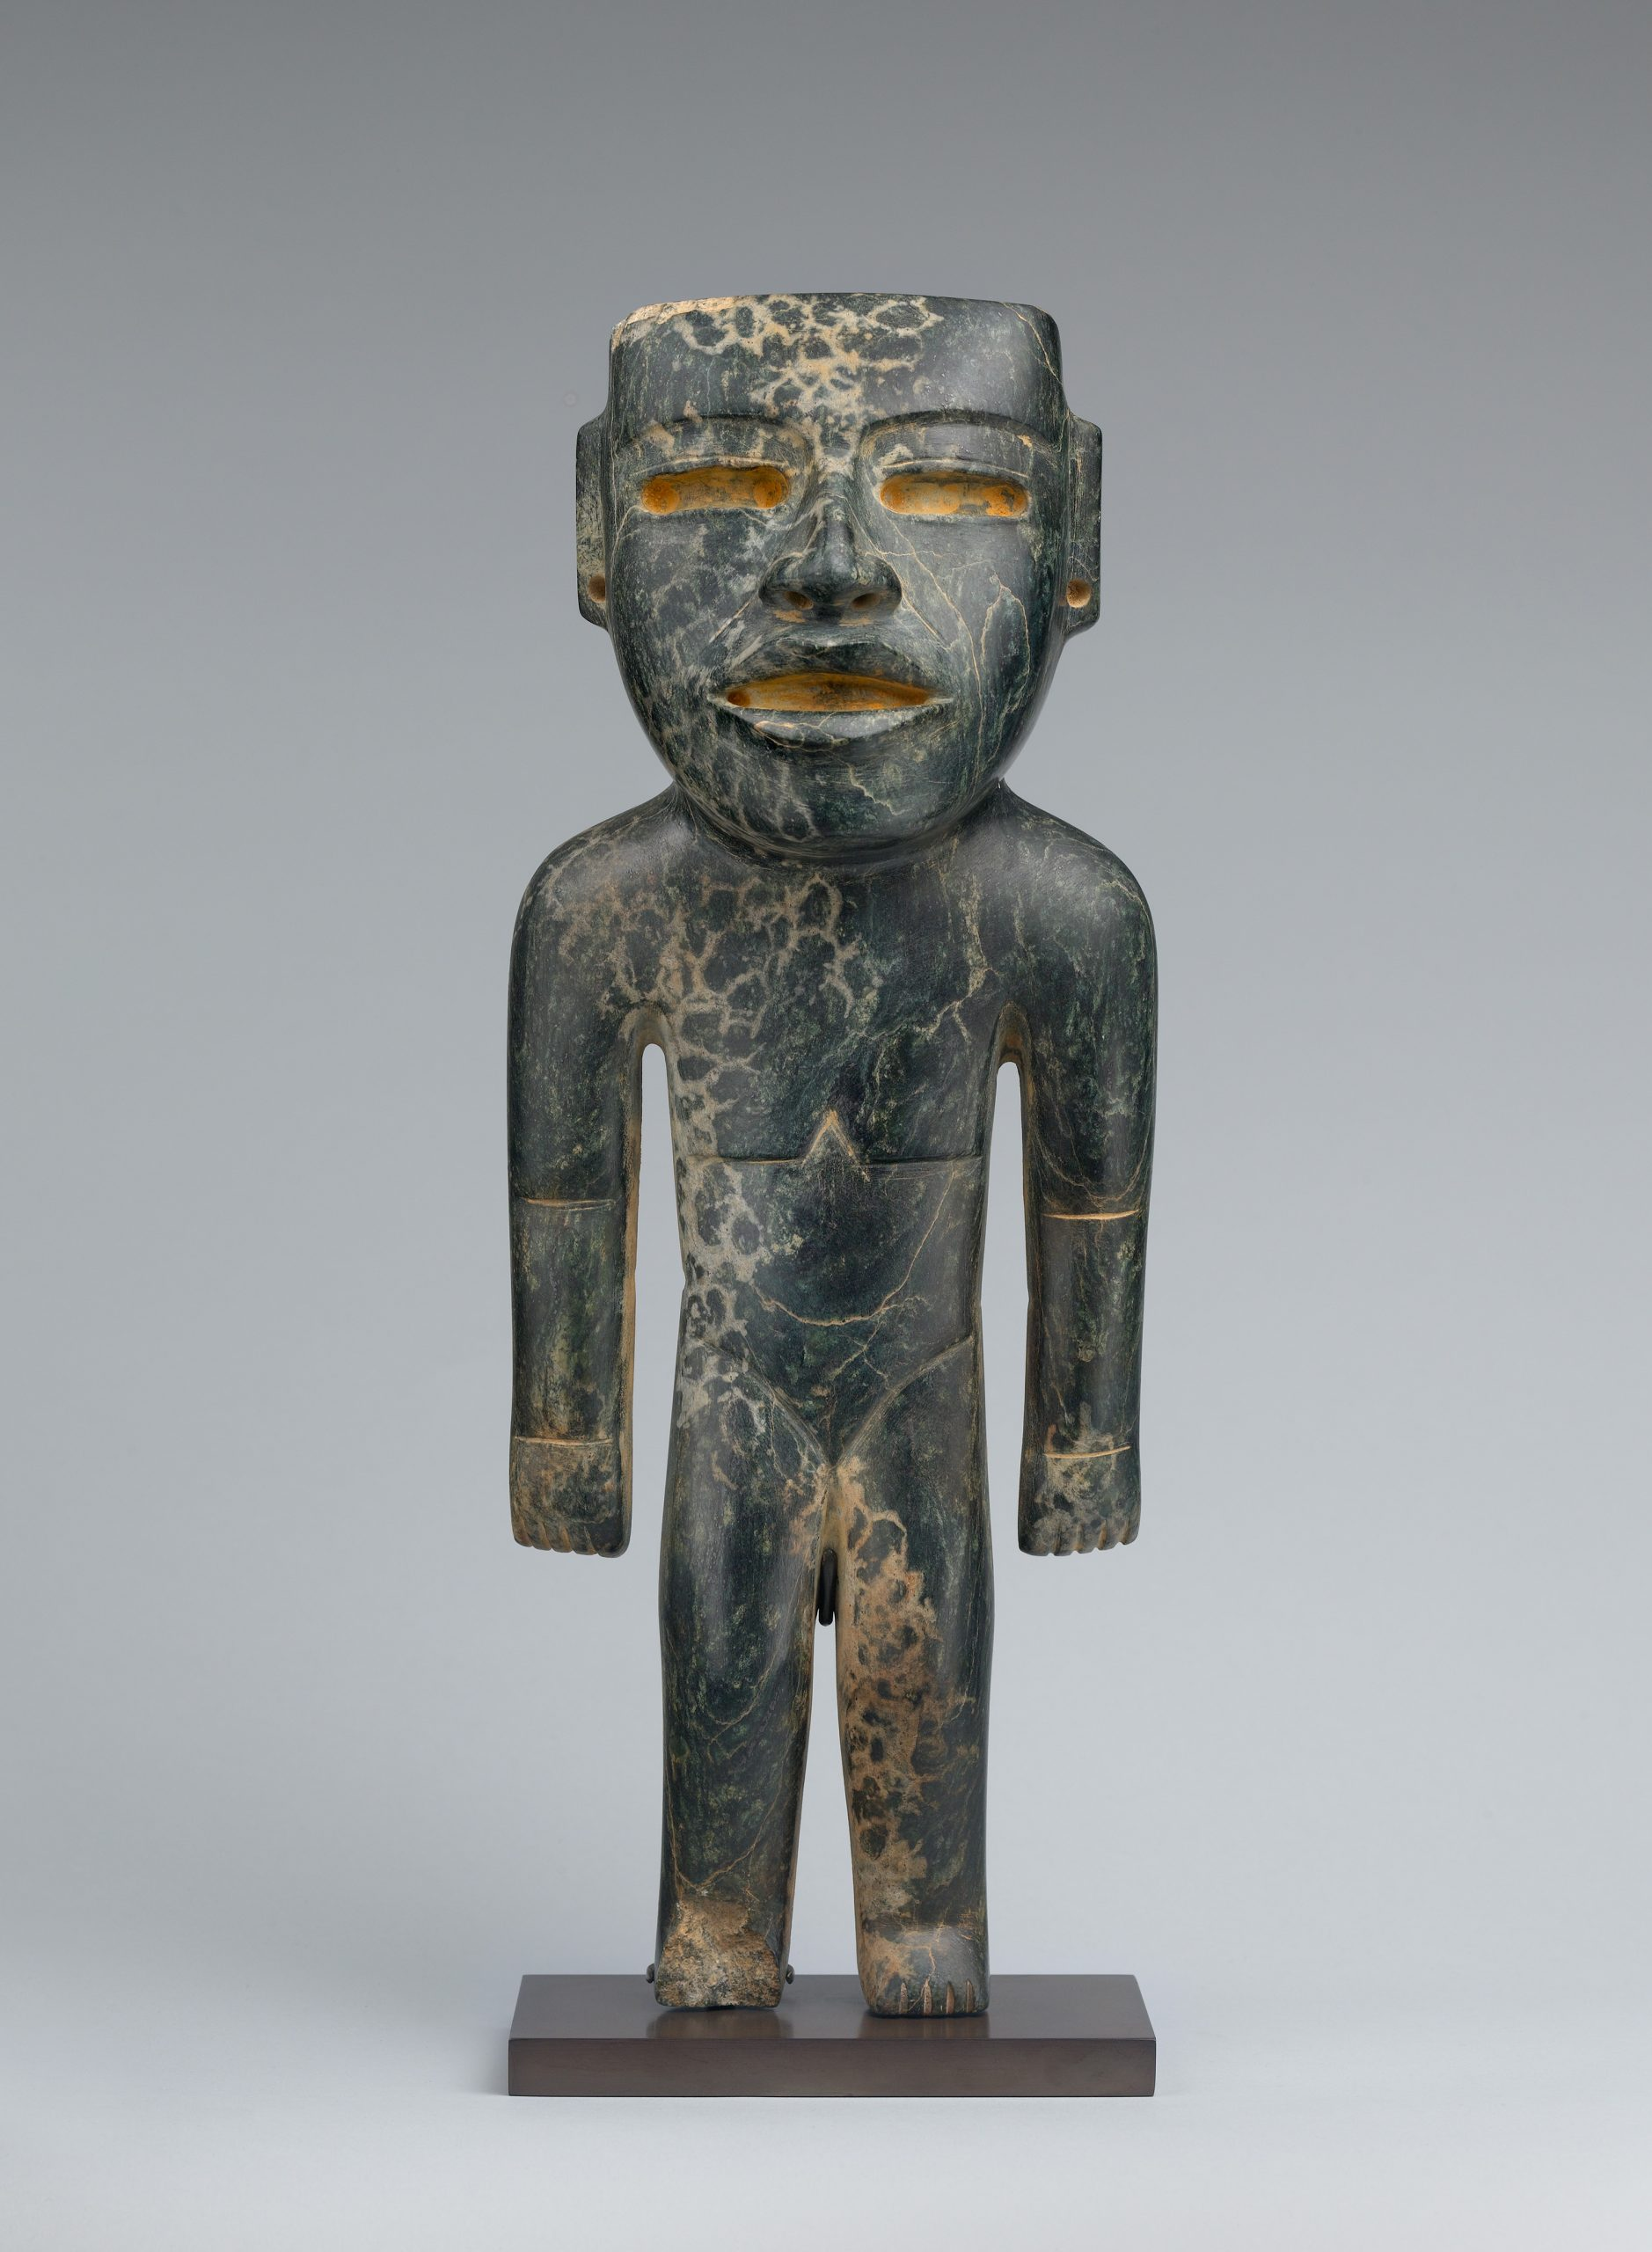 Standing stone figure with a face resembling an Olmec mask with deeply cut eyes and mouth.